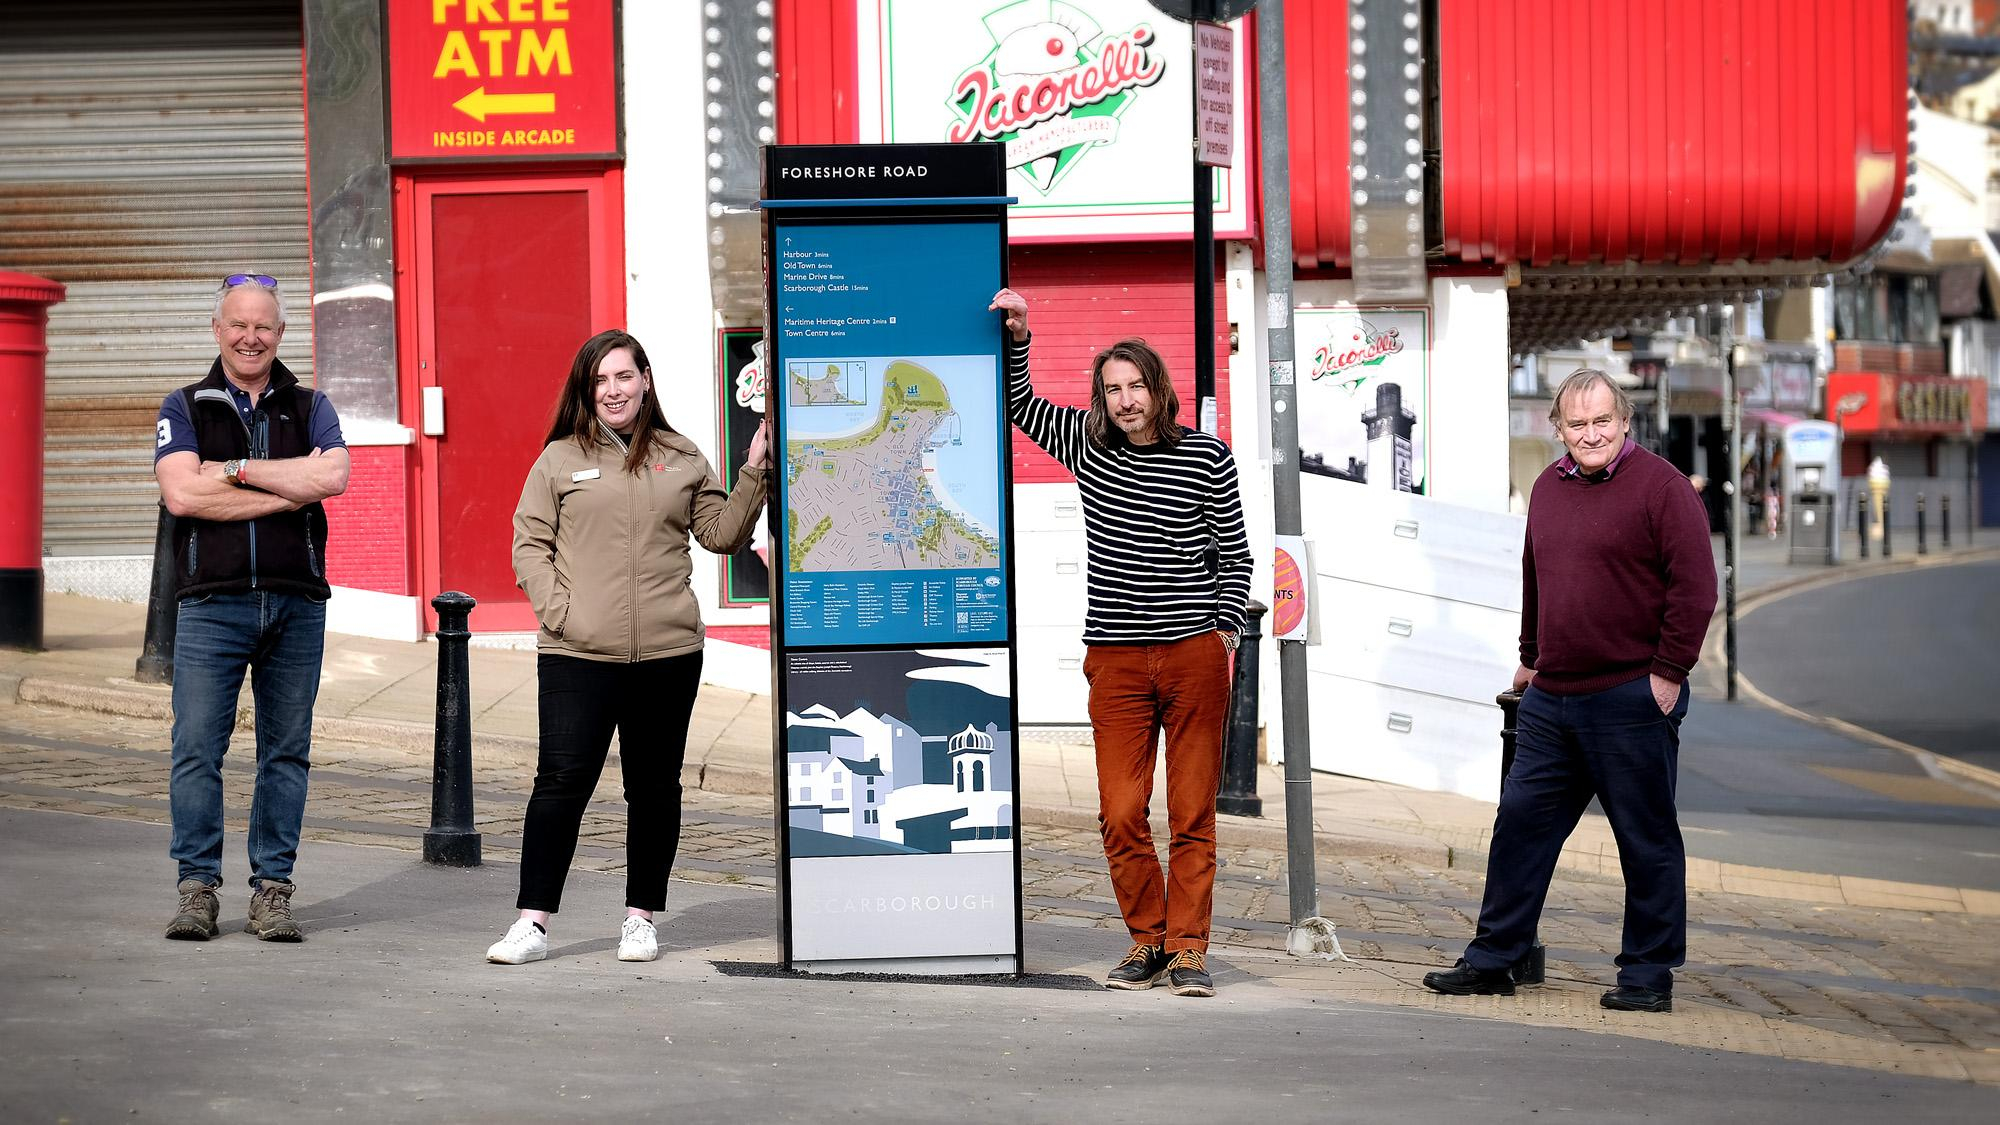 Picture of the launch of Scarborough's new wayfinding signs on Foreshore Road